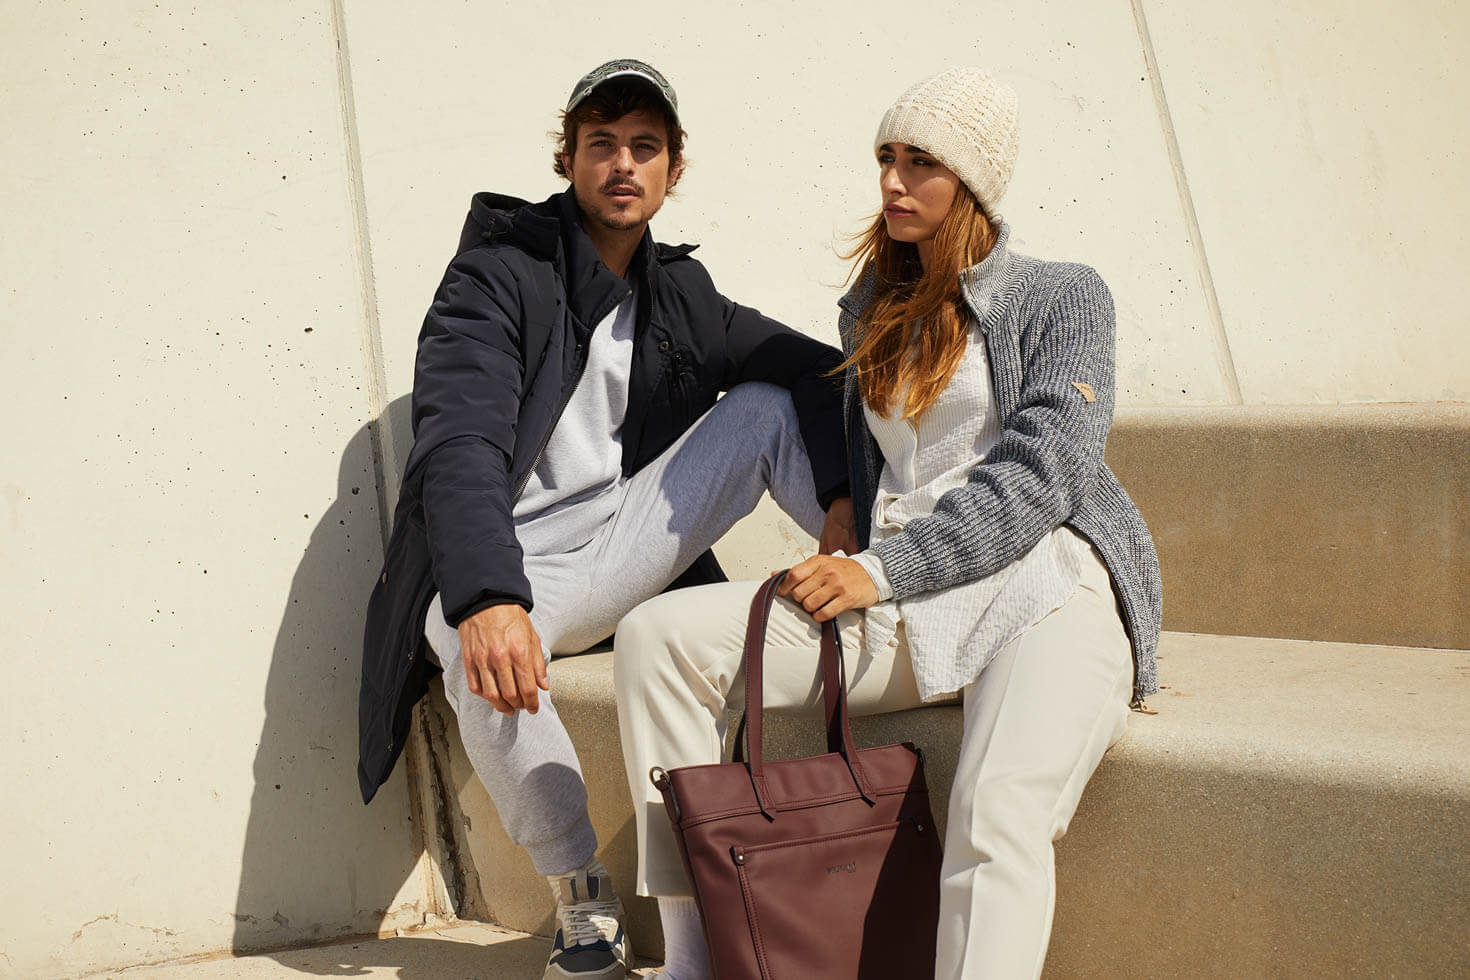 We joined two brands with different products and a common goal. Women's and man's clothes in a single production which allowed them to reduce costs and have a better engament with their audience.